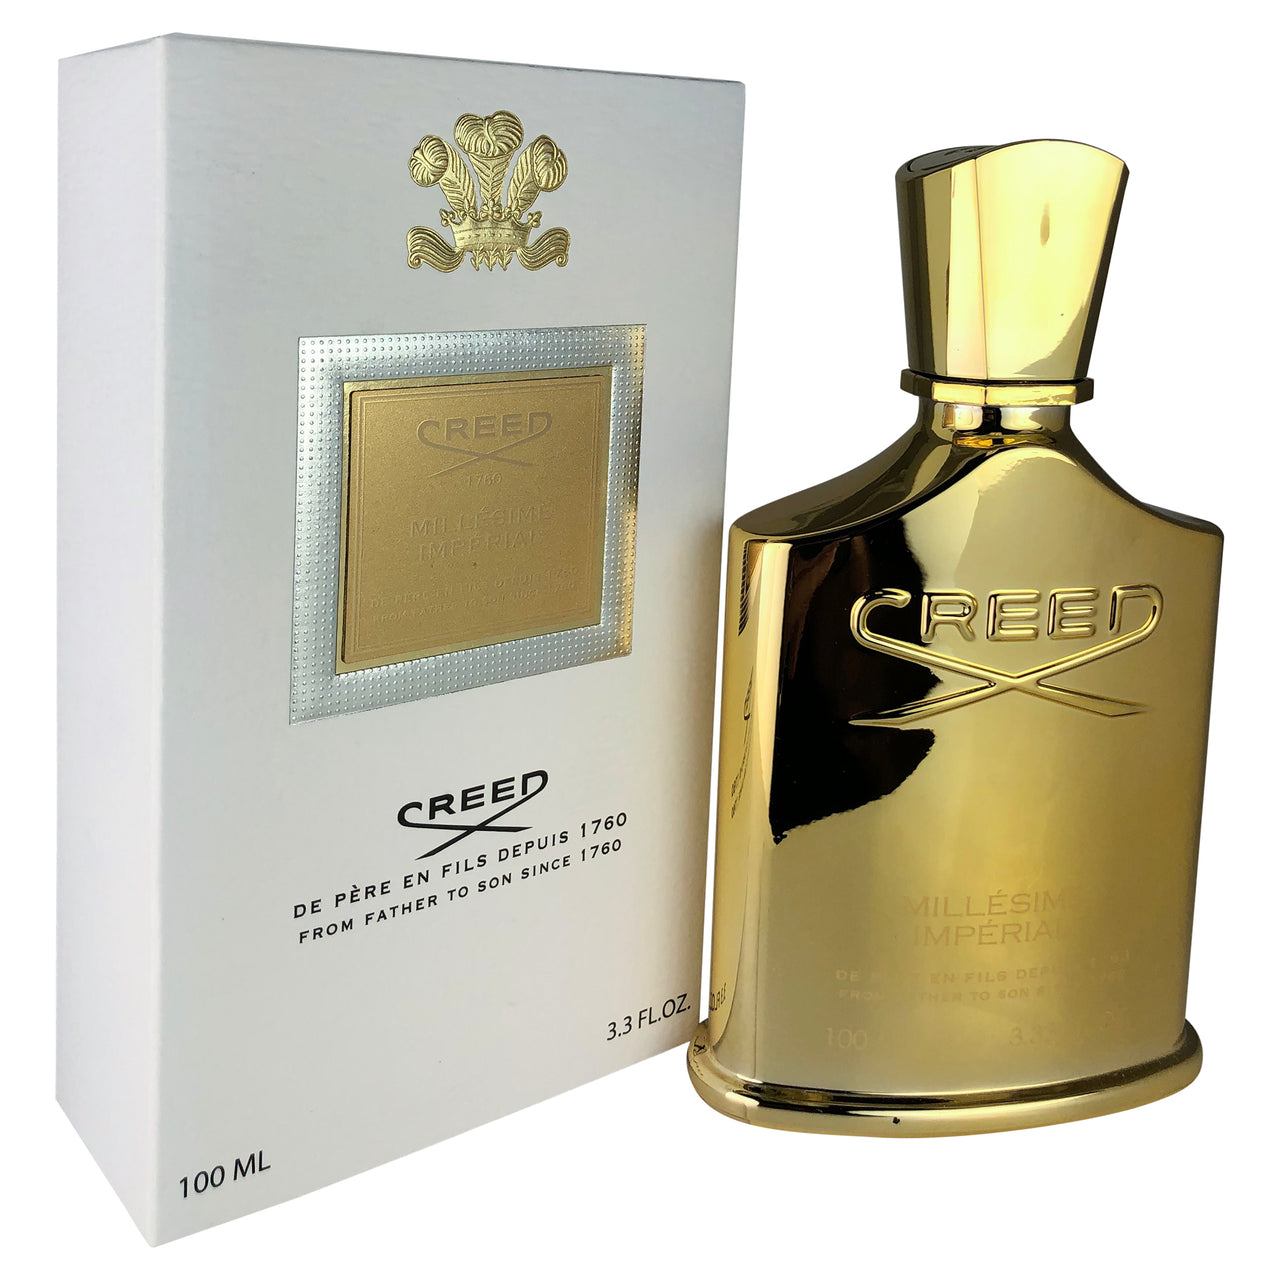 Creed Millesime Imperial For Men by Creed 3.4 oz Eau de Parfum Spray